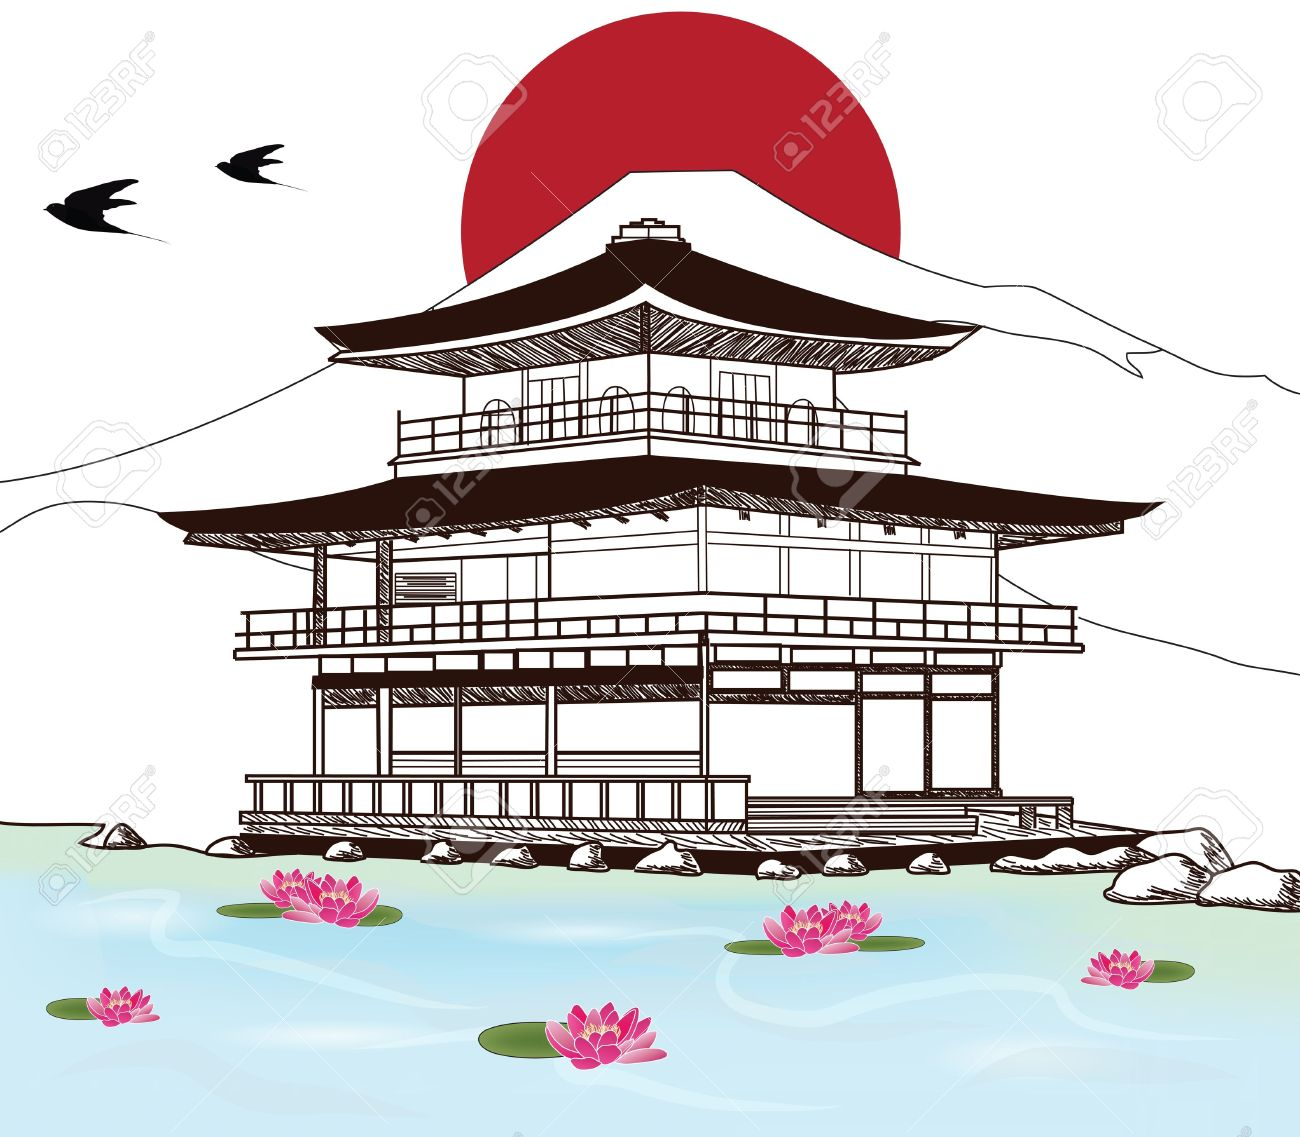 Sketch Of A Beautiful Japanese Pagoda Royalty Free Cliparts.